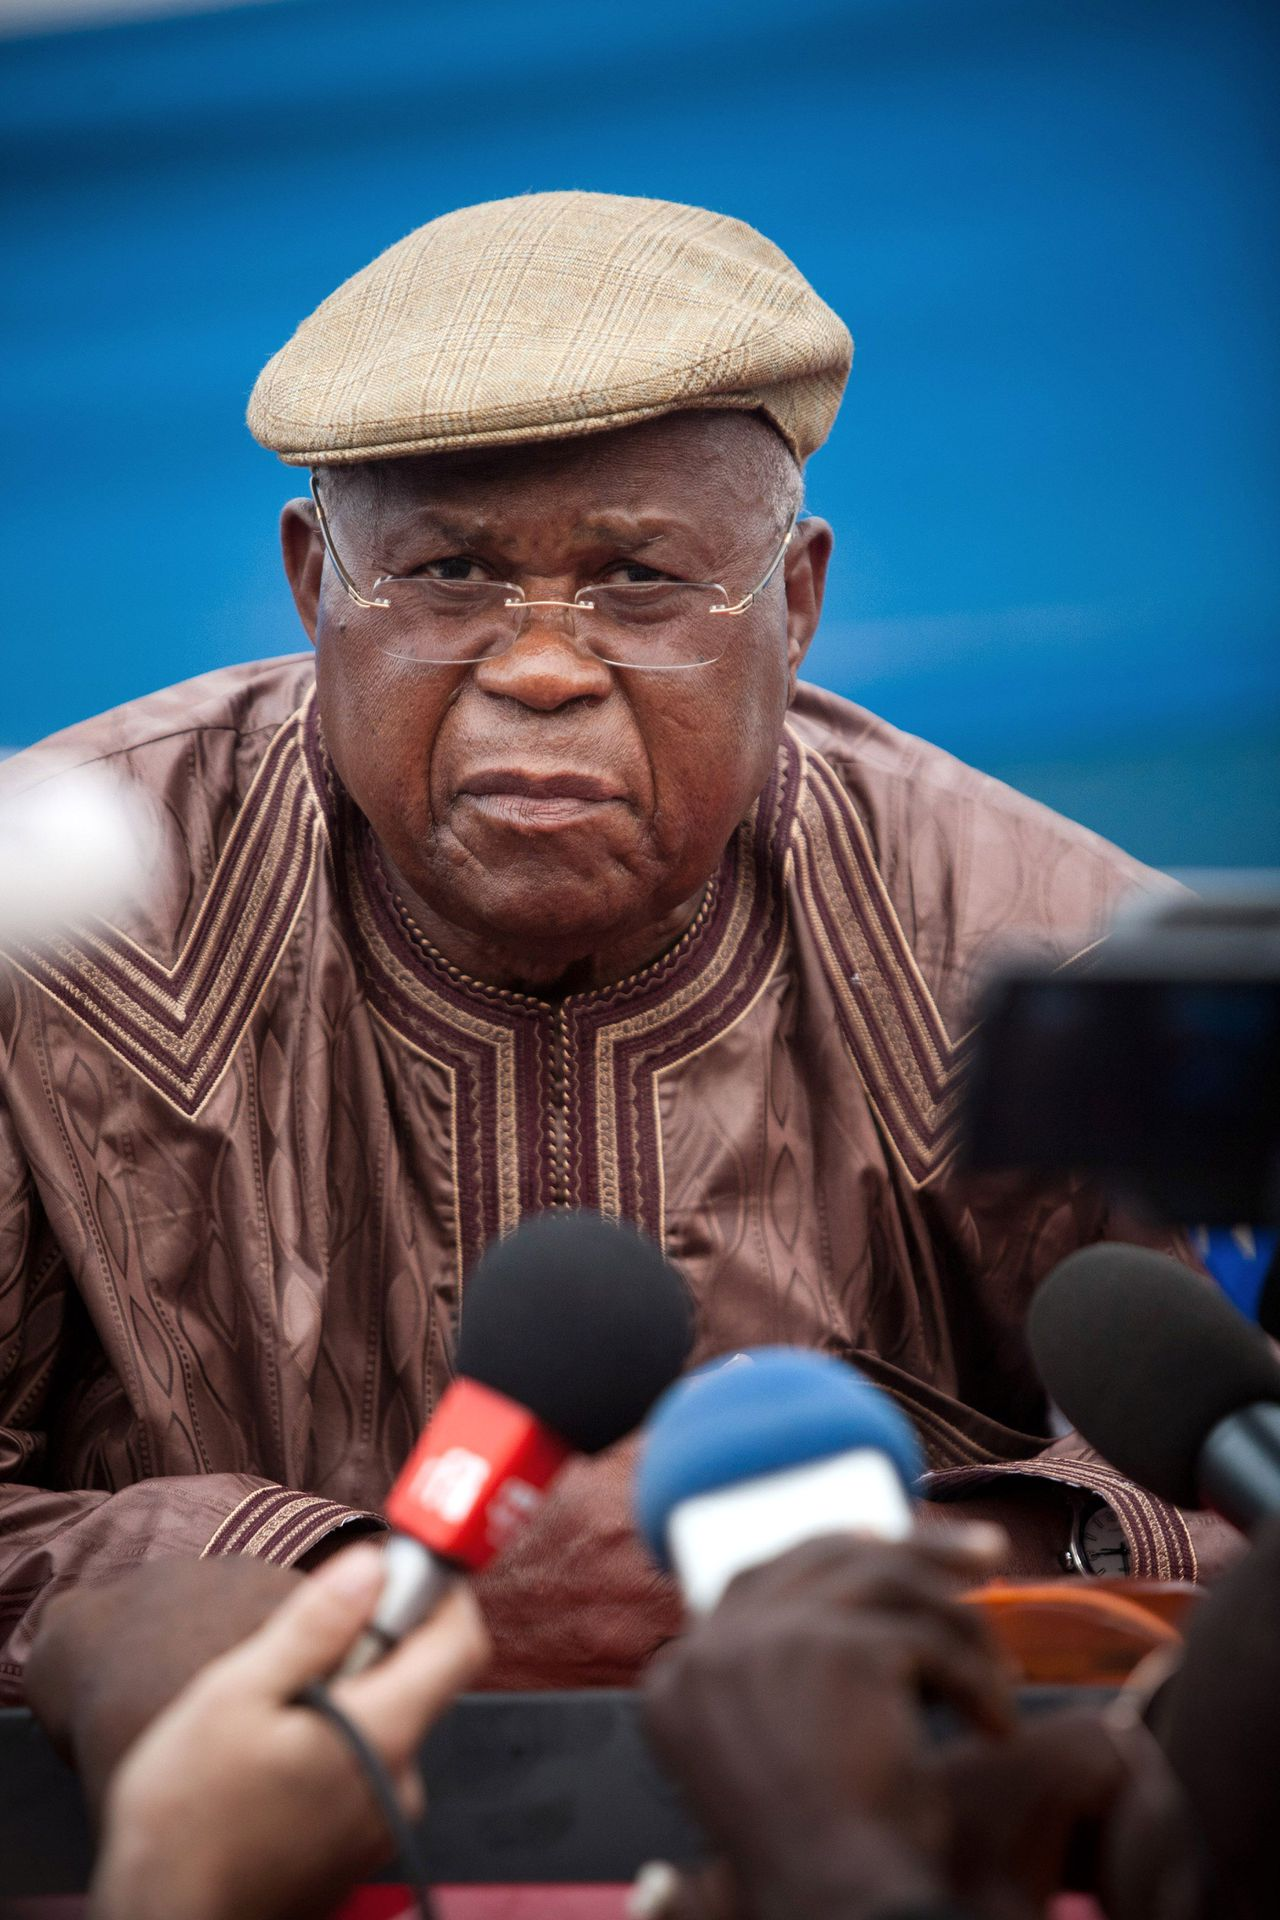 """Etienne Tshisekedi (C) leader of Democratic Republic of Congo's """"Union for Democracy and Social Progress"""" (UDPS) and presidential candidate listens to journalists questions following his arrival at Ndjili airport in Kinshasa on November 26, 2011. The last day of campaigning in Democratic Republic of Congo polls on Saturday descended into a stand-off between opposition leader Etienne Tshisekedi and police who blockaded his red Hummer as he tried to defy a rally ban. AFP PHOTO/GWENN DUBOURTHOUMIEU"""